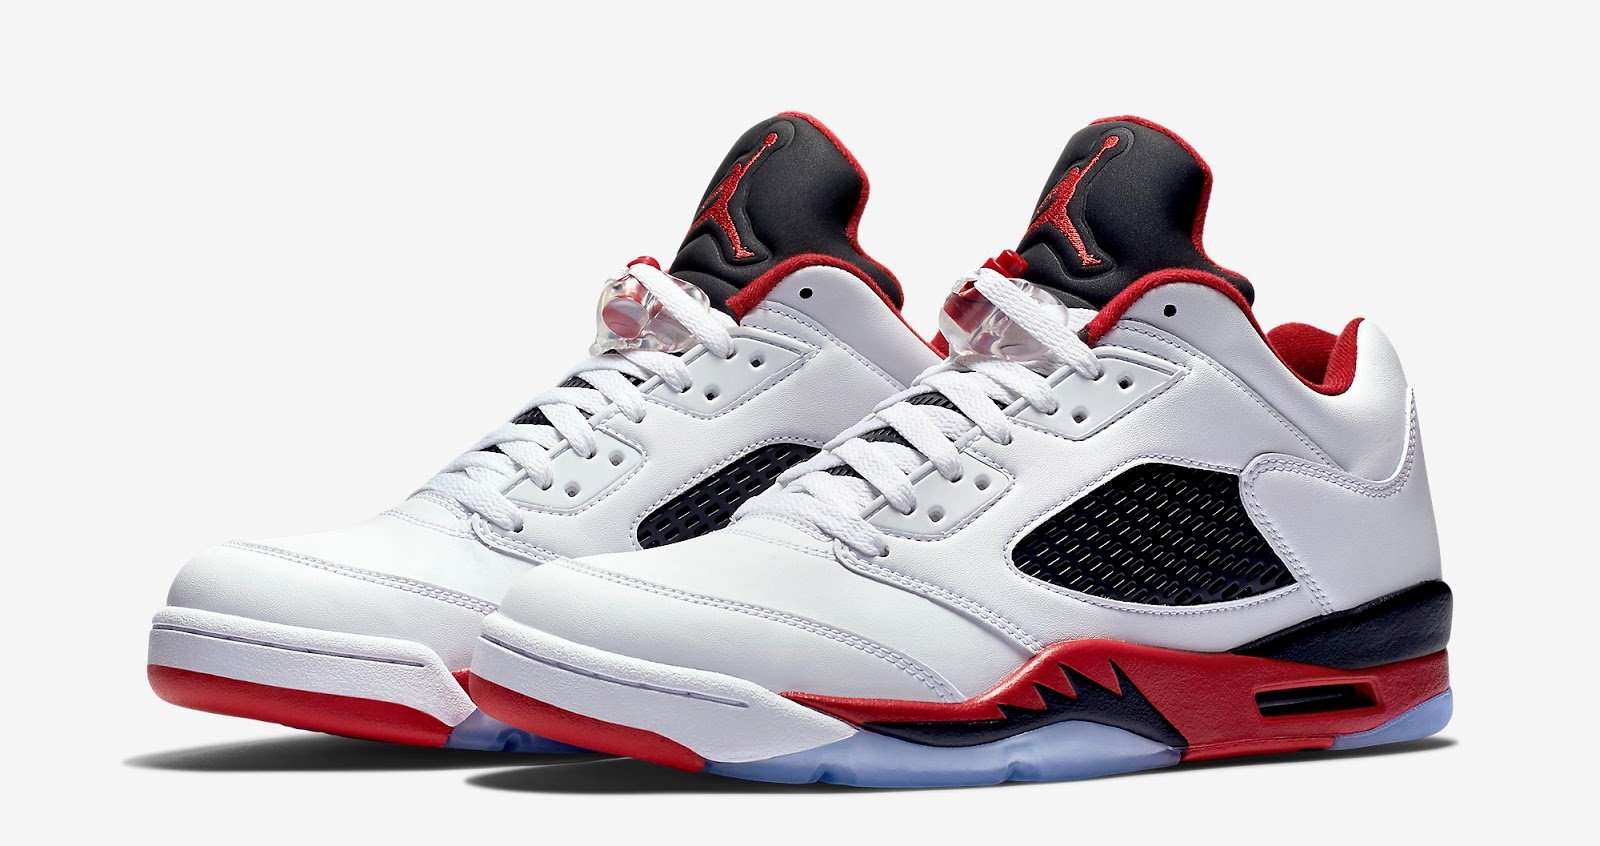 ff4c5ea9432a Air Jordan 5 Retro Low